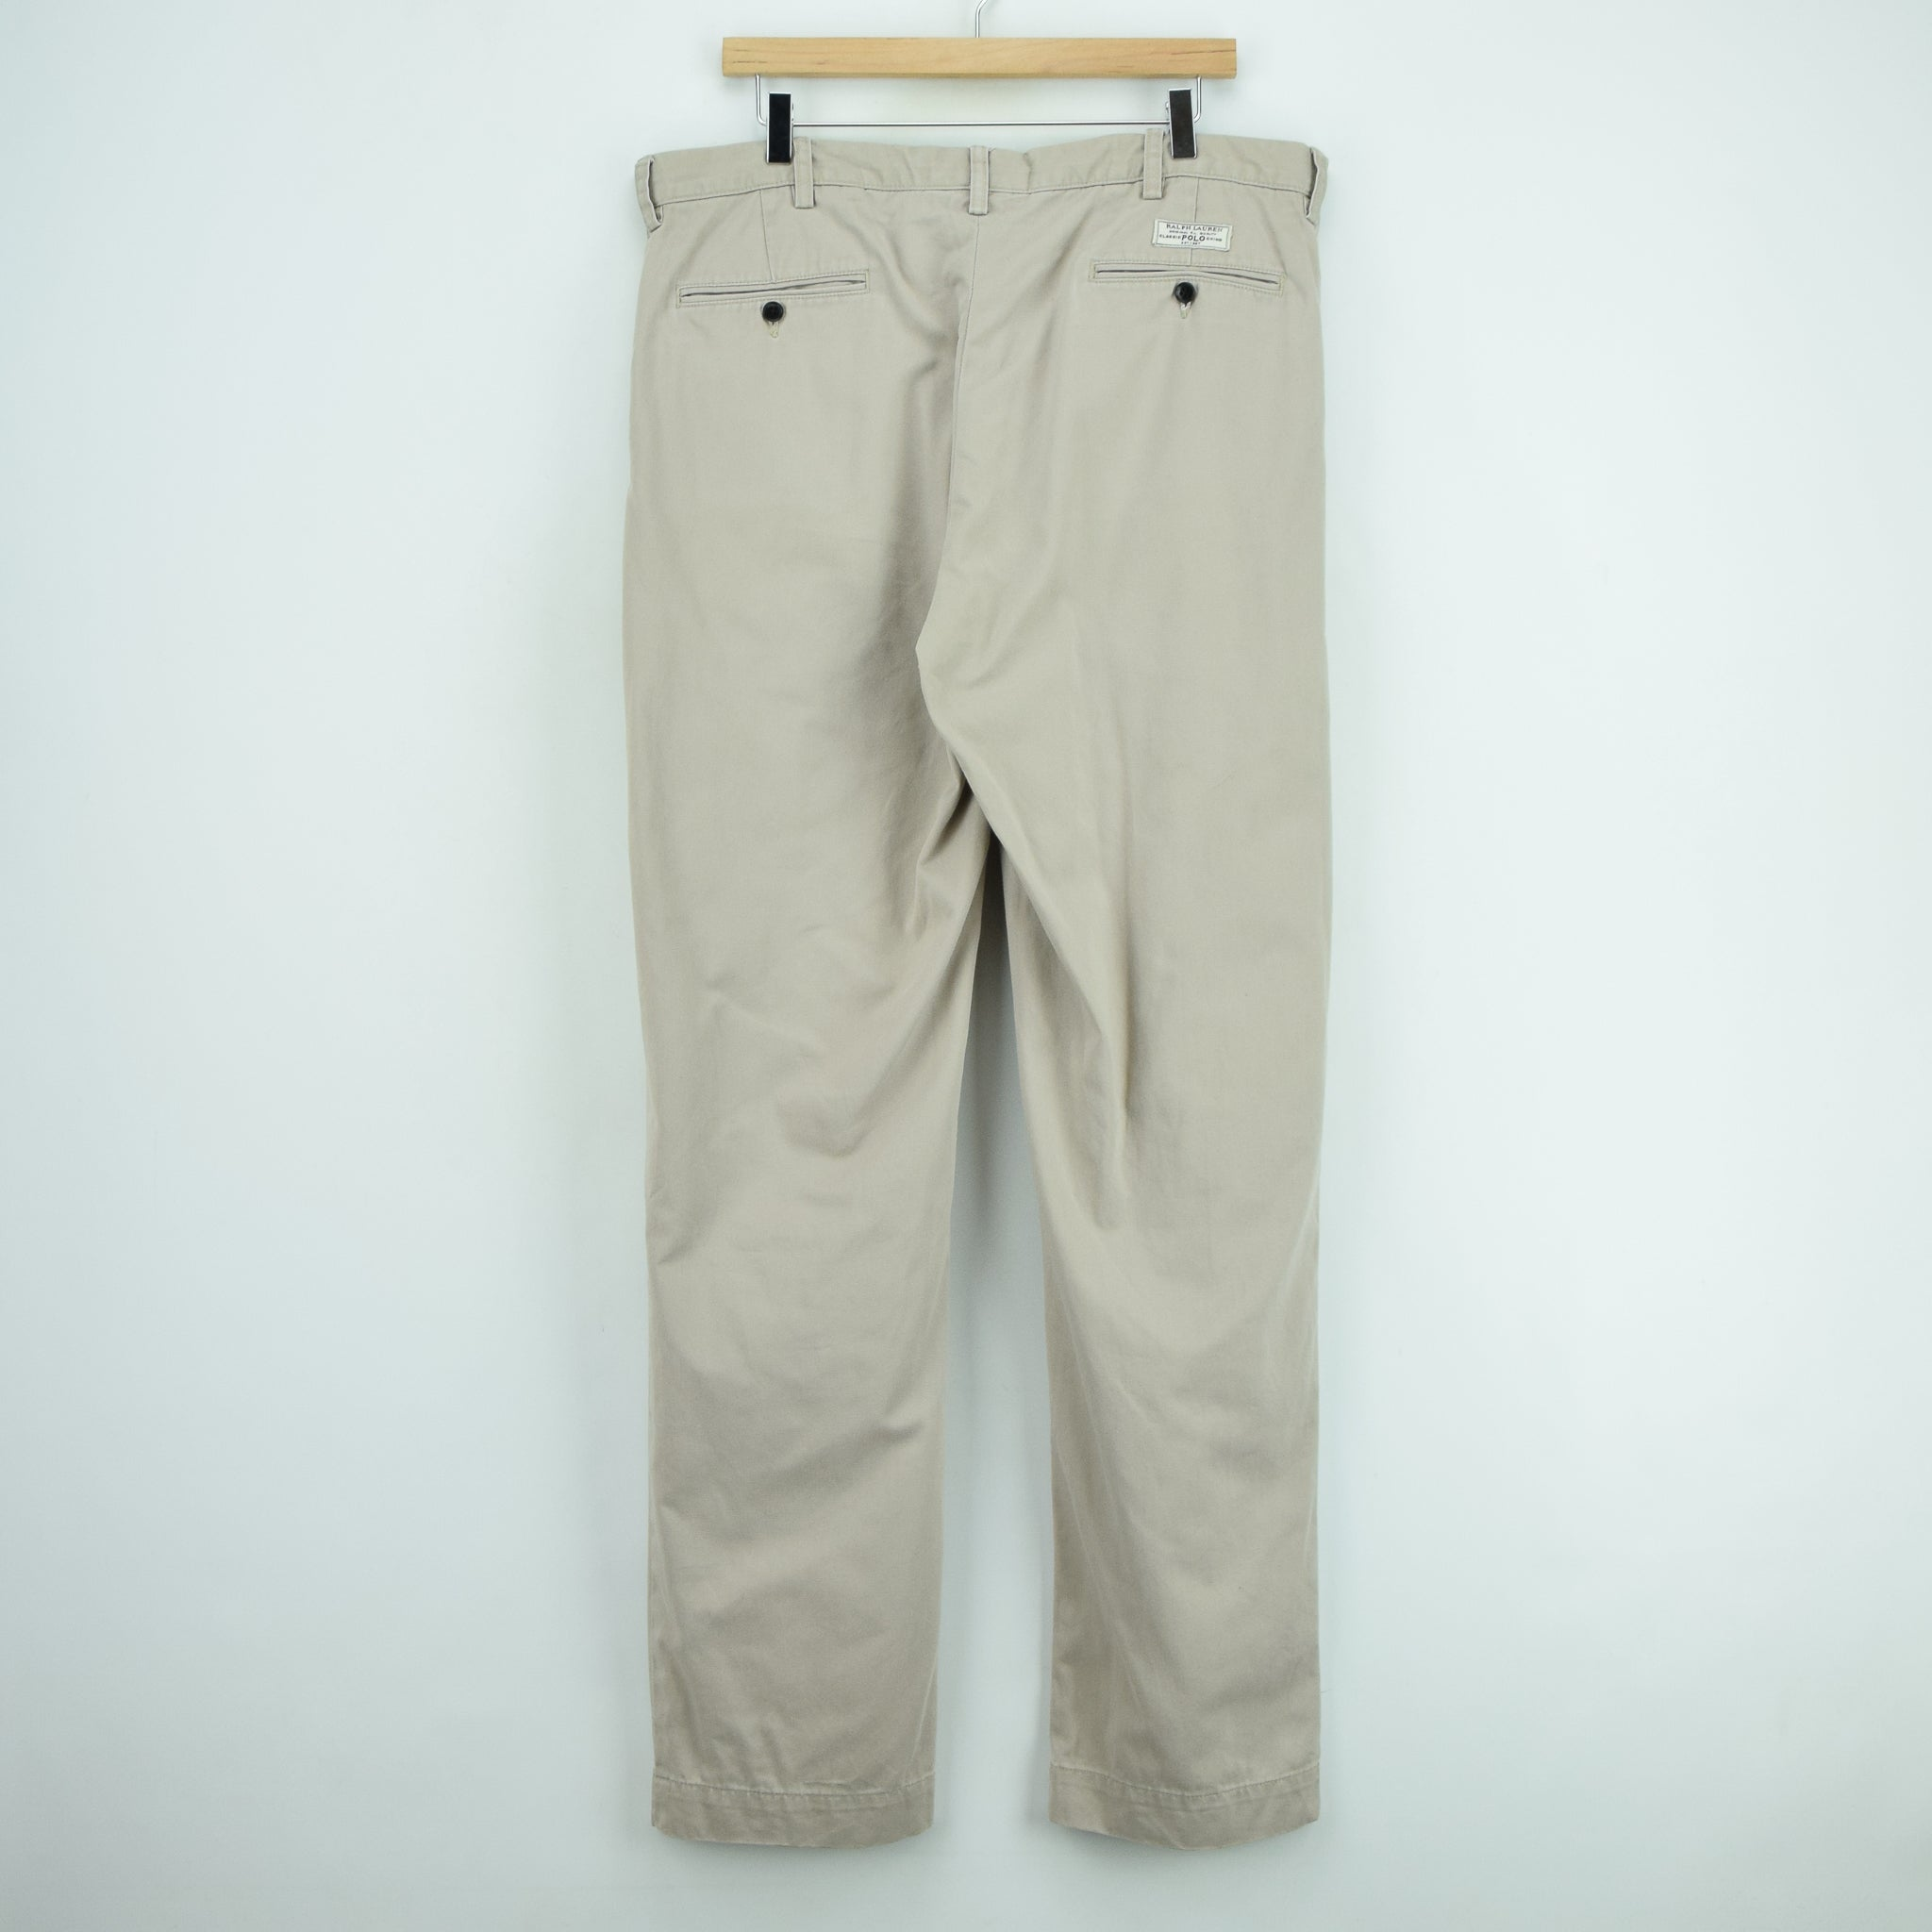 Ralph Lauren Polo Prospect Pant Chinos Stone Pleated Front Trousers 36 W 34 L back